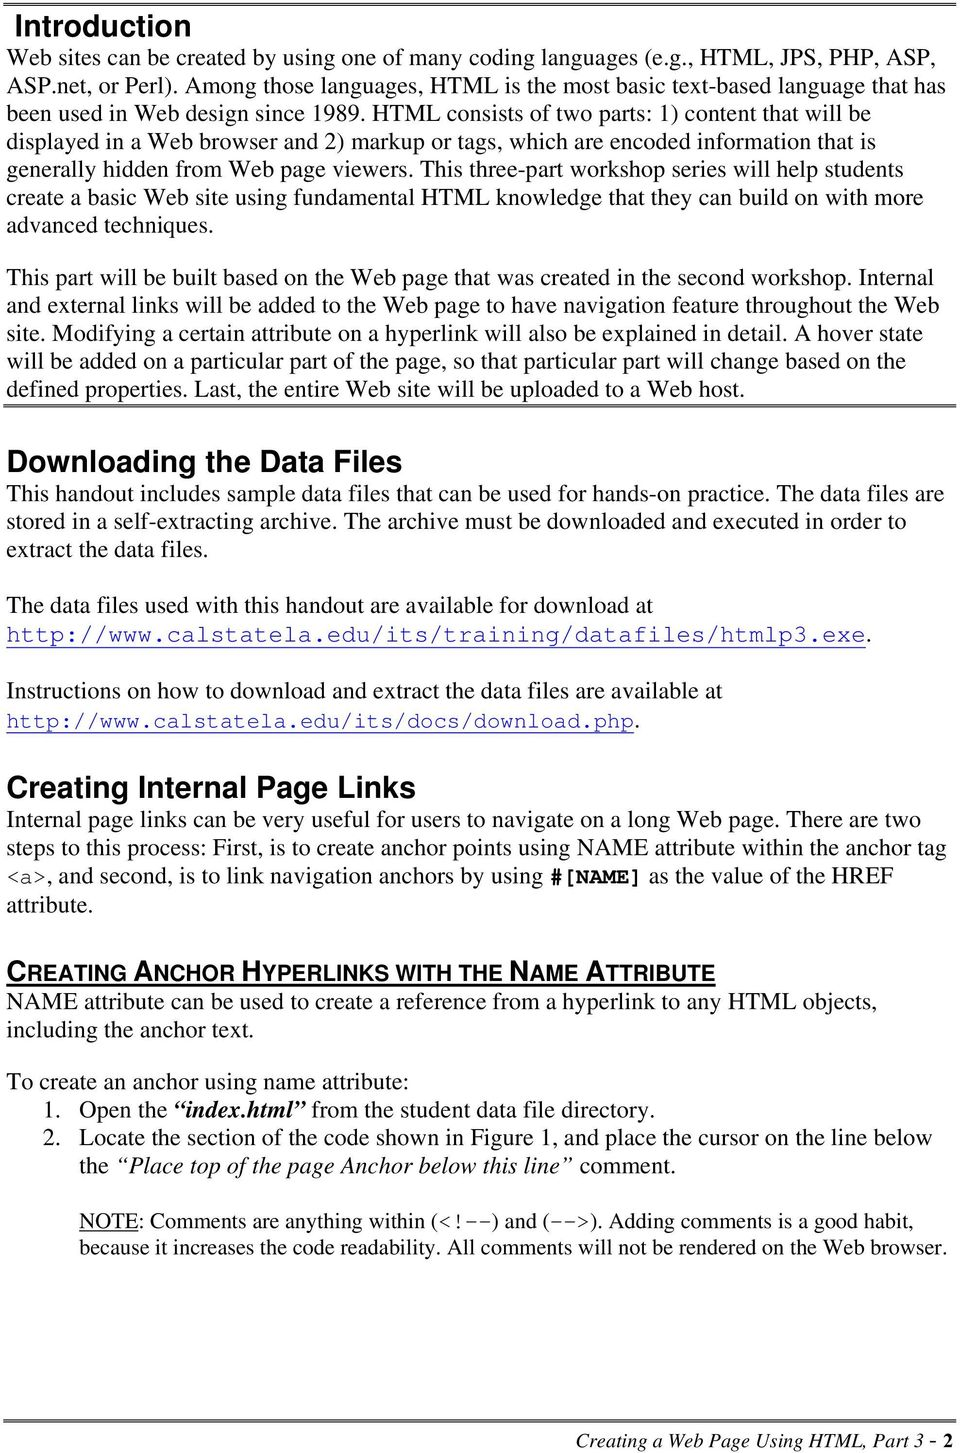 Html anchor download